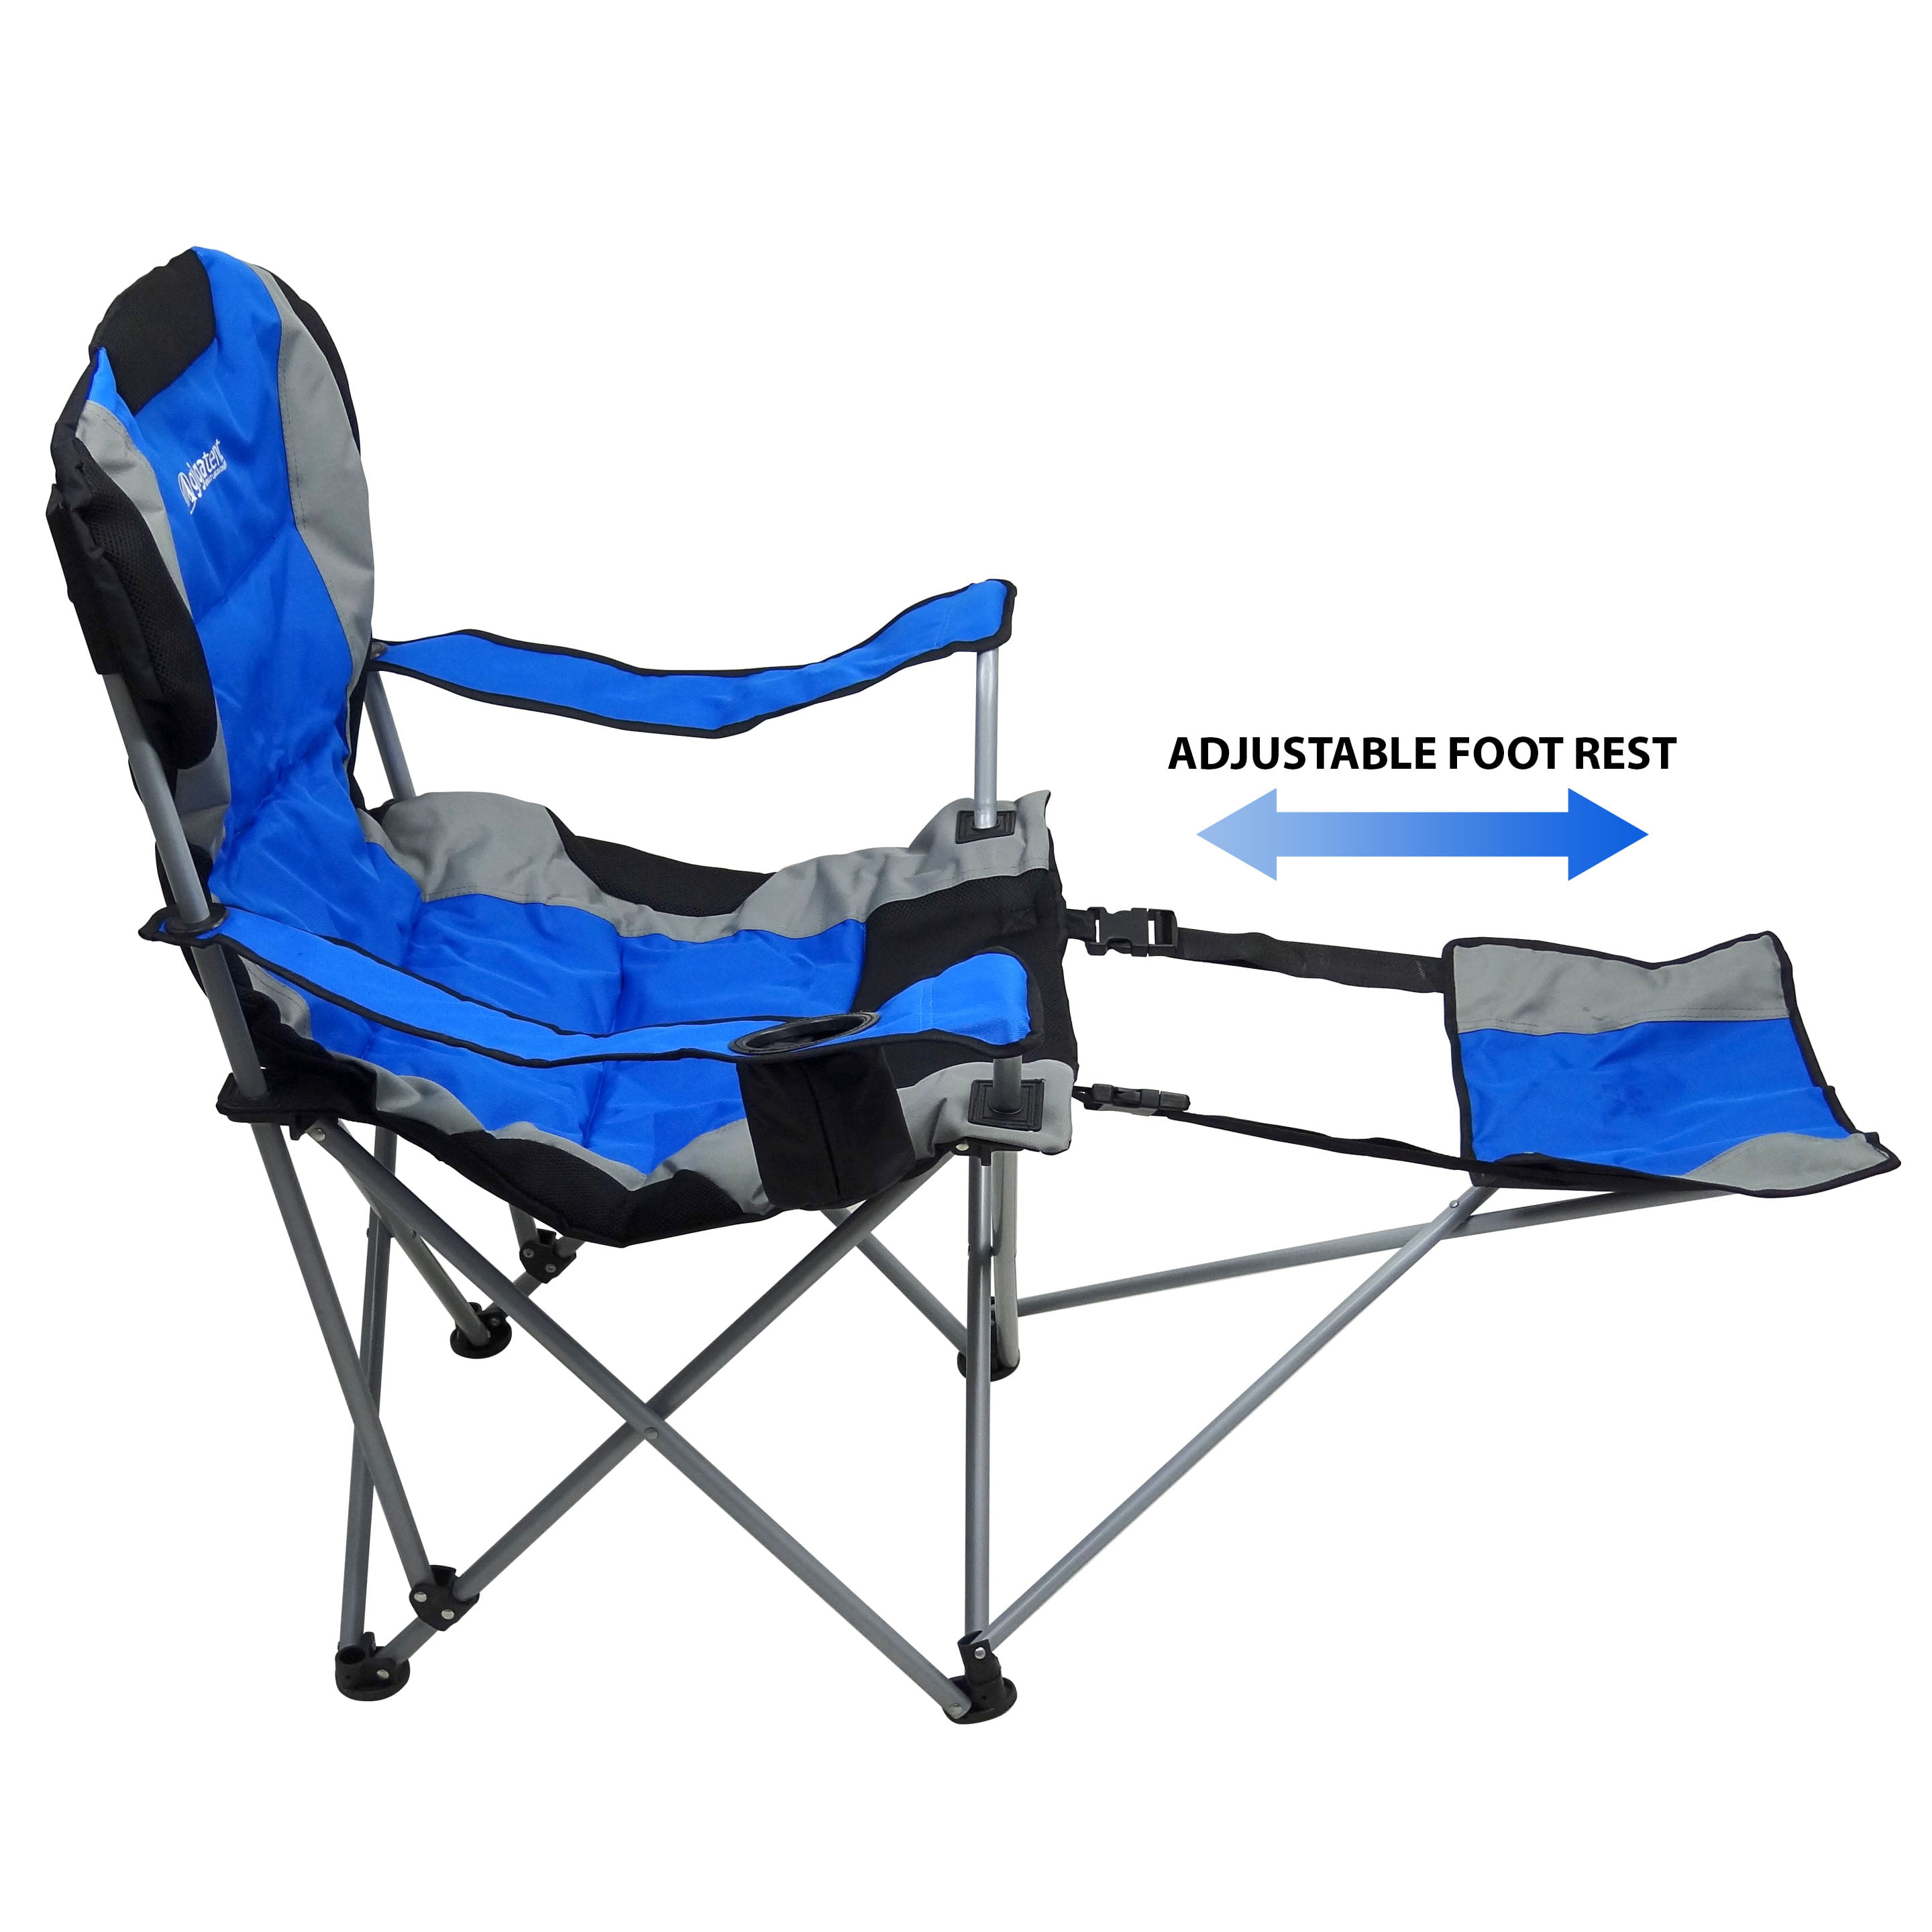 GigaTent Folding Camping Chair With Footrest   Walmart.com